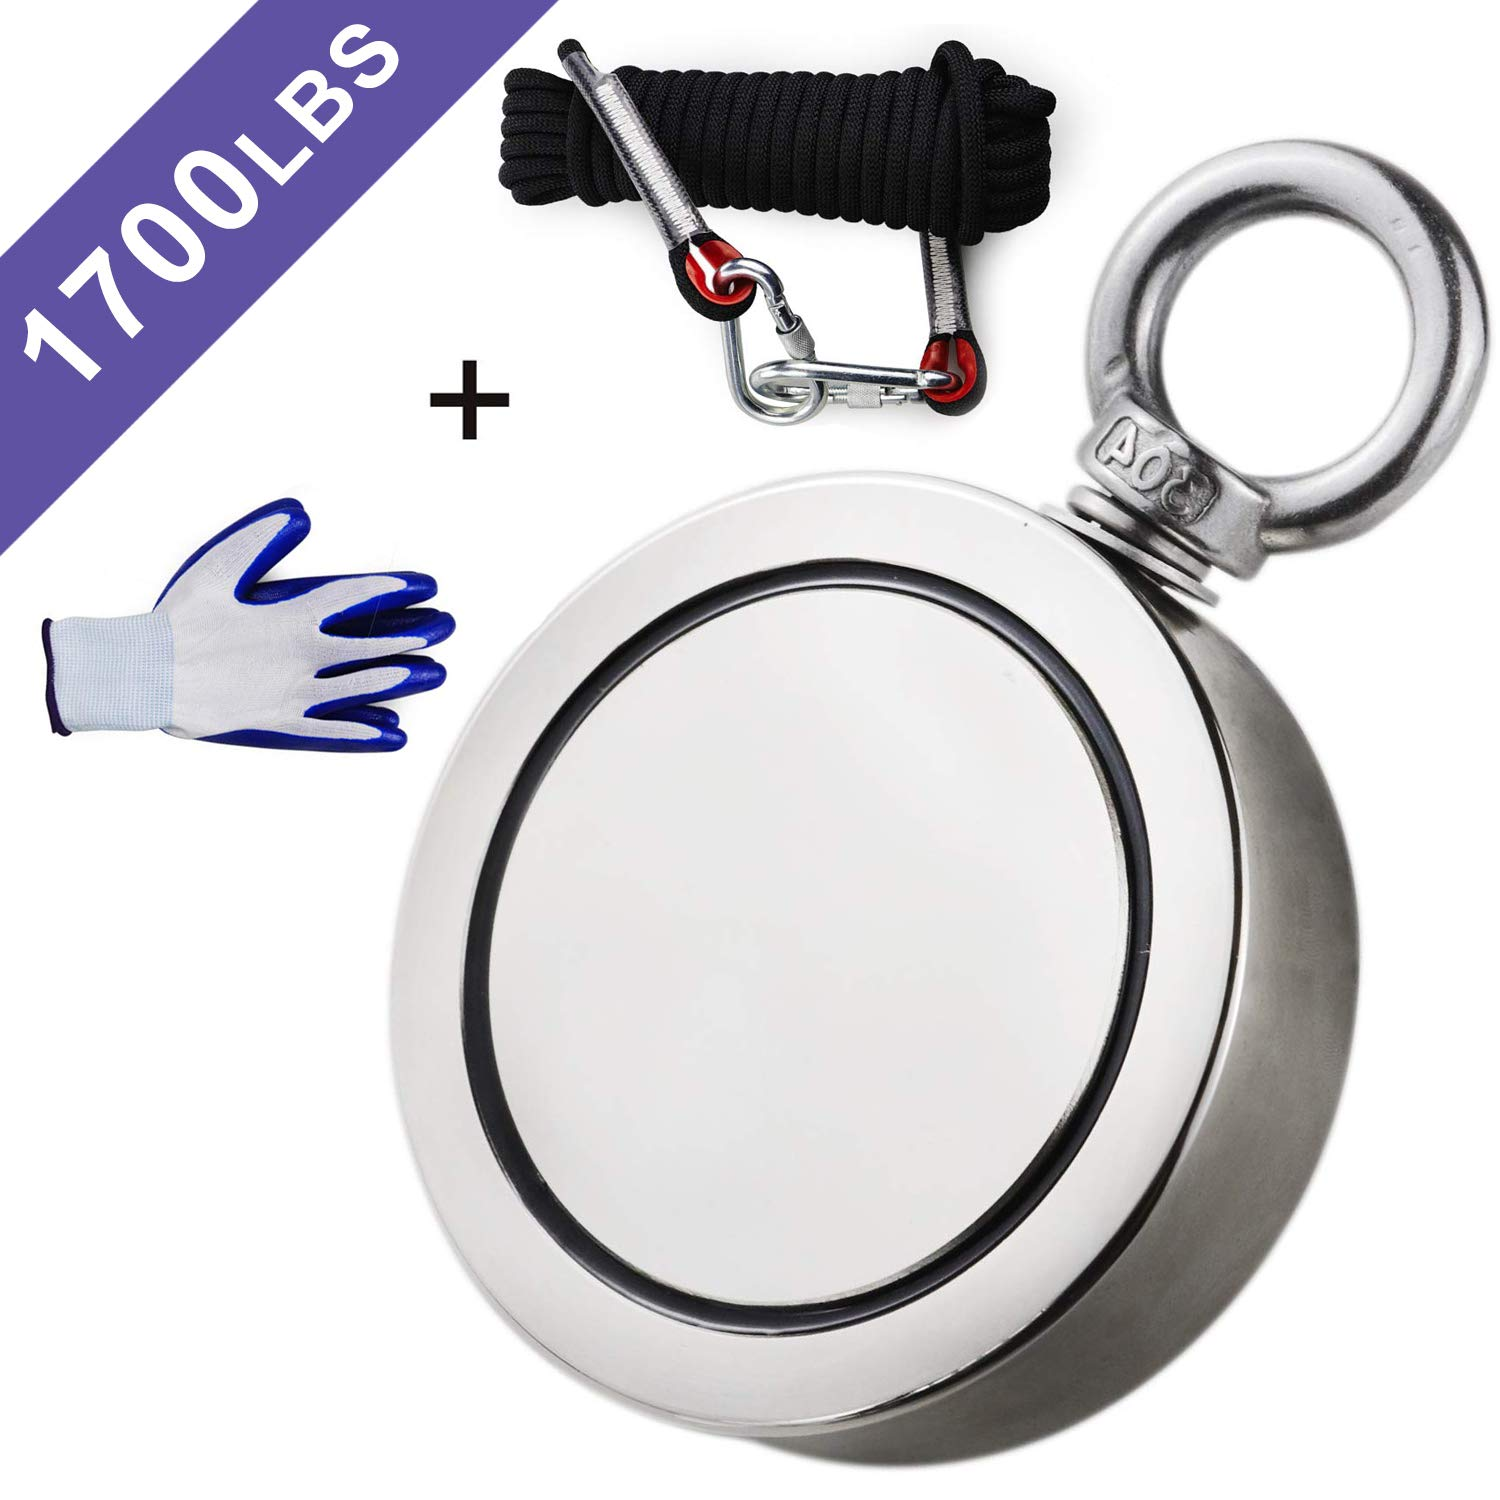 Double Sided Neodymium Fishing Magnet, Combined 1700lbs(772KG) Pulling Force, Super Strong Fishing Magnet, Diameter 3.7inch (94mm), Perfect for Retrieving in River and Magnetic Fishing